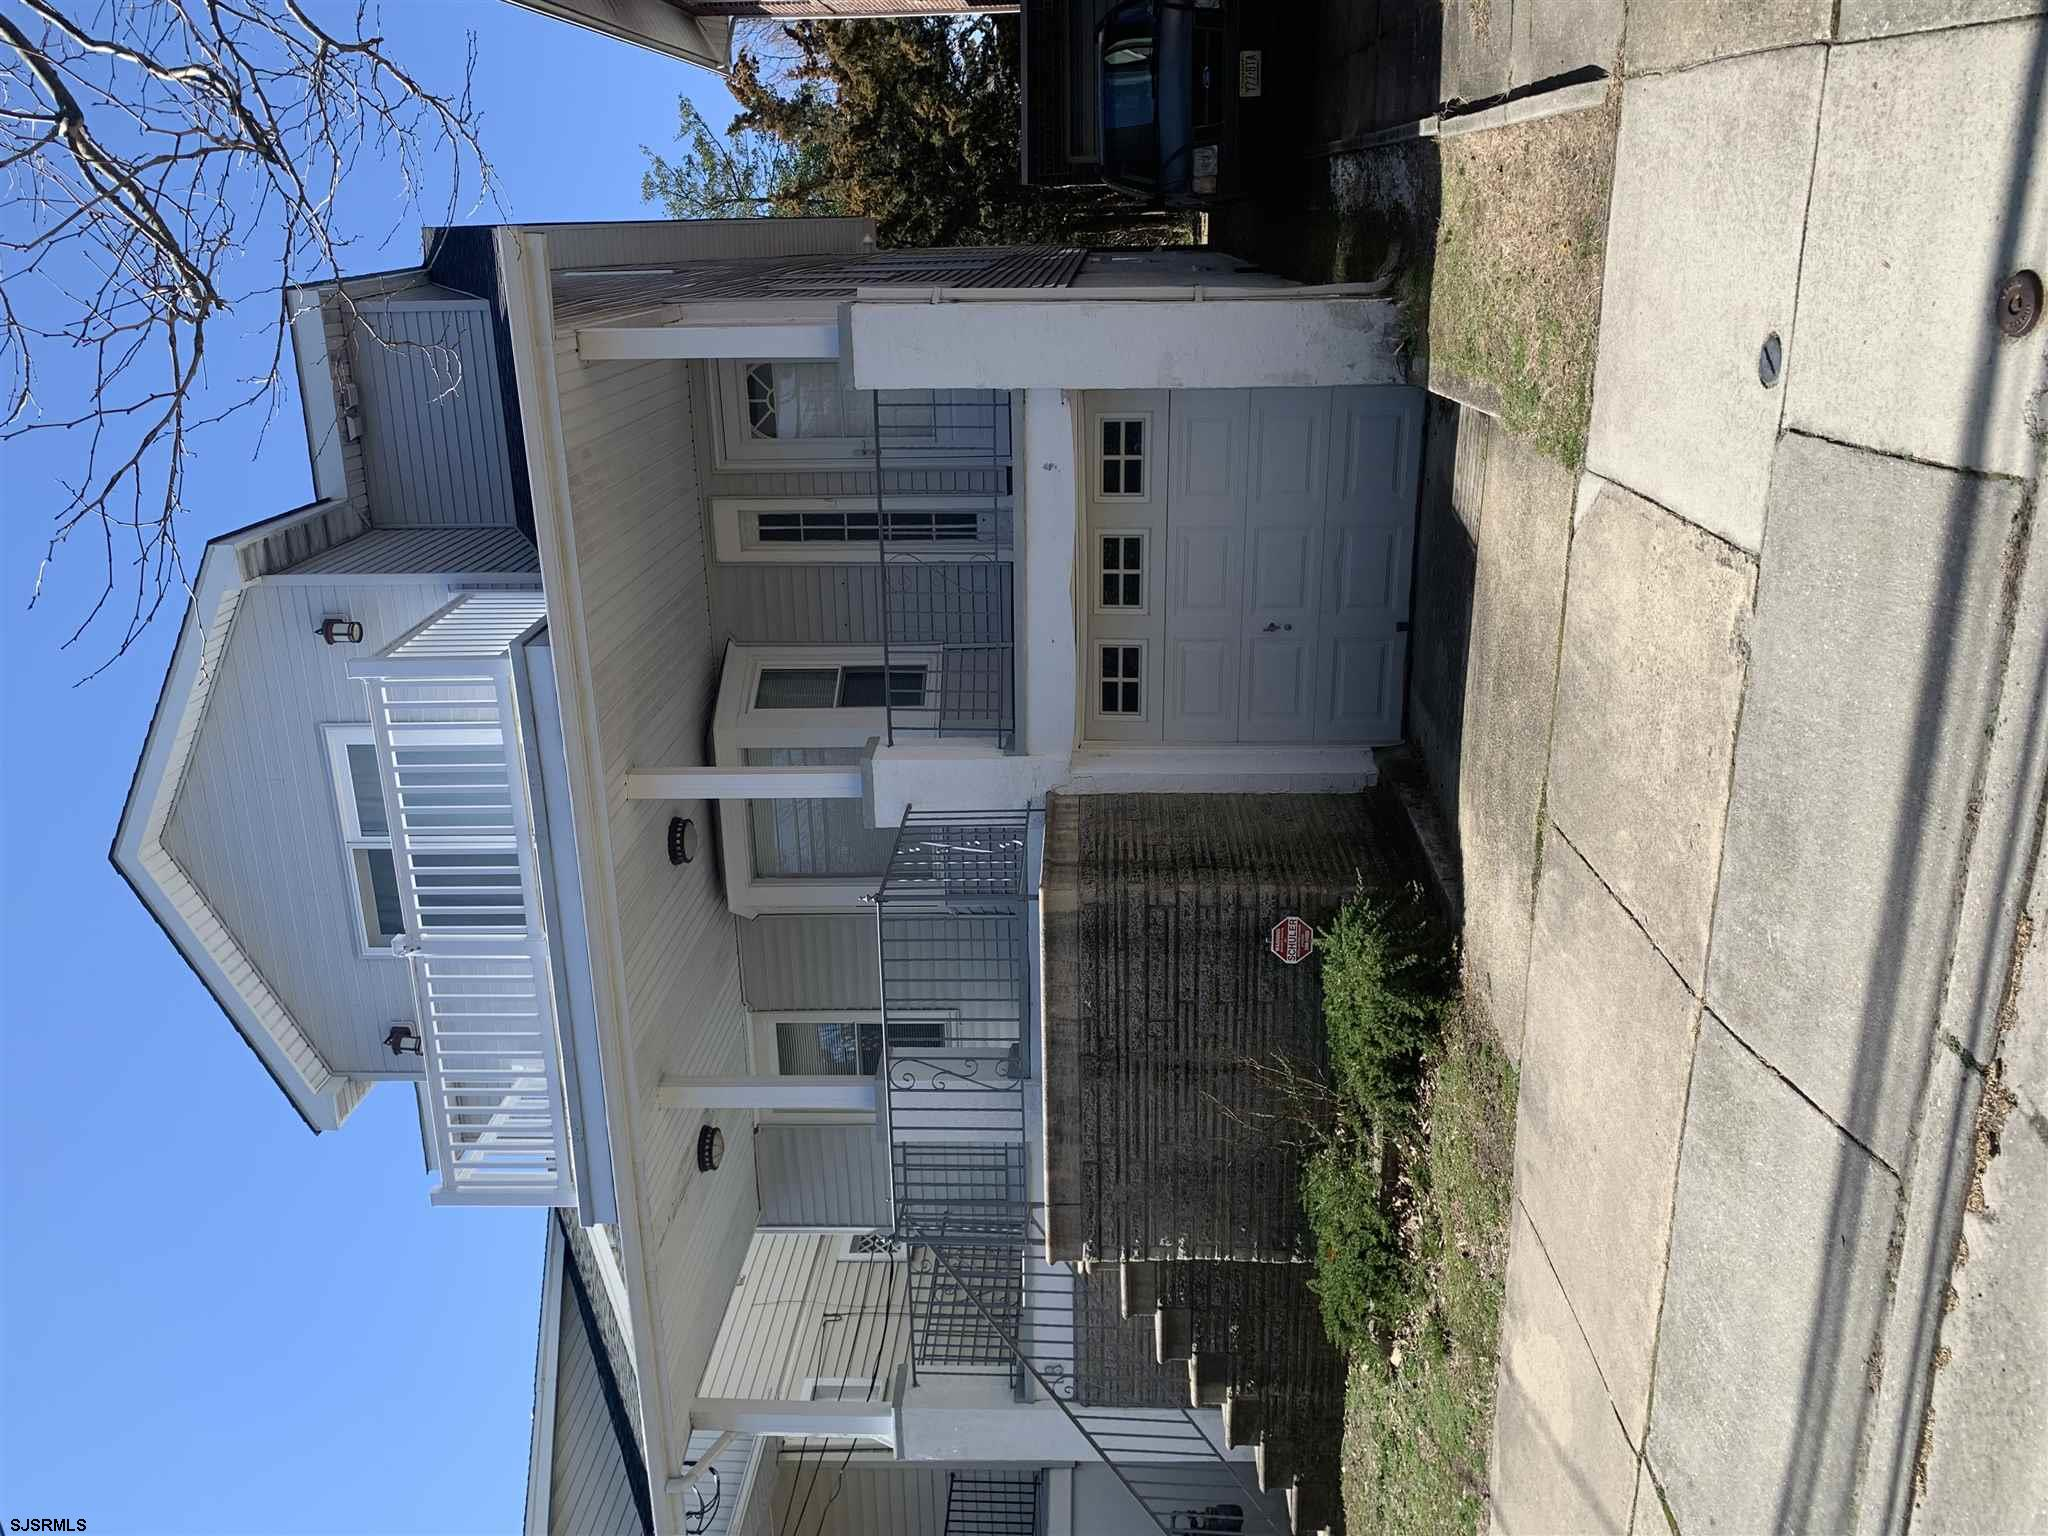 2.5 Blocks to Beach and Boardwalk !!!   This duplex offers a very spacious First floor , 2 Bedrooms,Large living & Dining room . Front Porch for your relaxing . 31 x 150 lot .A Very large yard that is ready for your imagination and creativeness . Second floor is owners unit . Completely remodeled open floor plan . 2 bedrooms, 2 baths, Front and back decks.  Each unit has separate gas and electric & Tank less  water heater.  First floor is rented with a yearly tenant  Are you  Ready to enjoy your time at the shore !!!